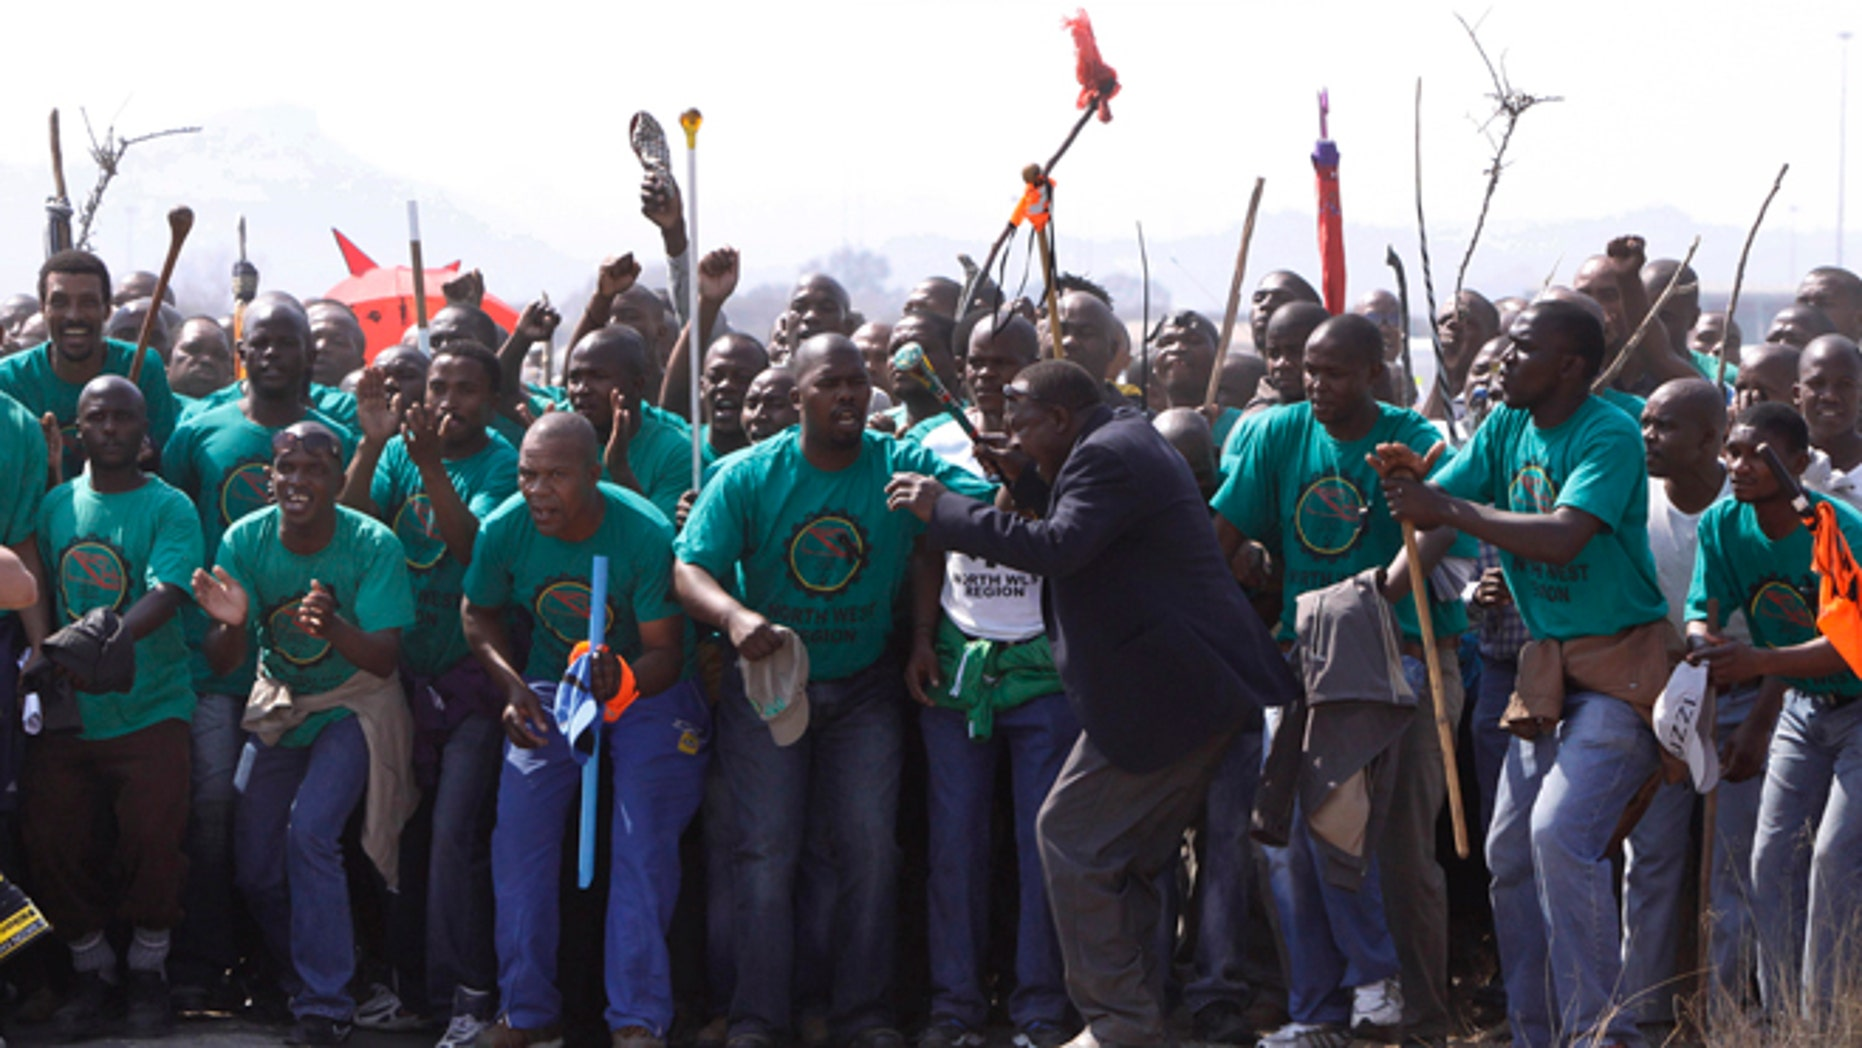 August 23, 2012: Mourners make their way to a memorial service at the Lonmin Platinum Mine near Rustenburg, South Africa after police shot and killed 34 striking miners and wounded 78 last week.